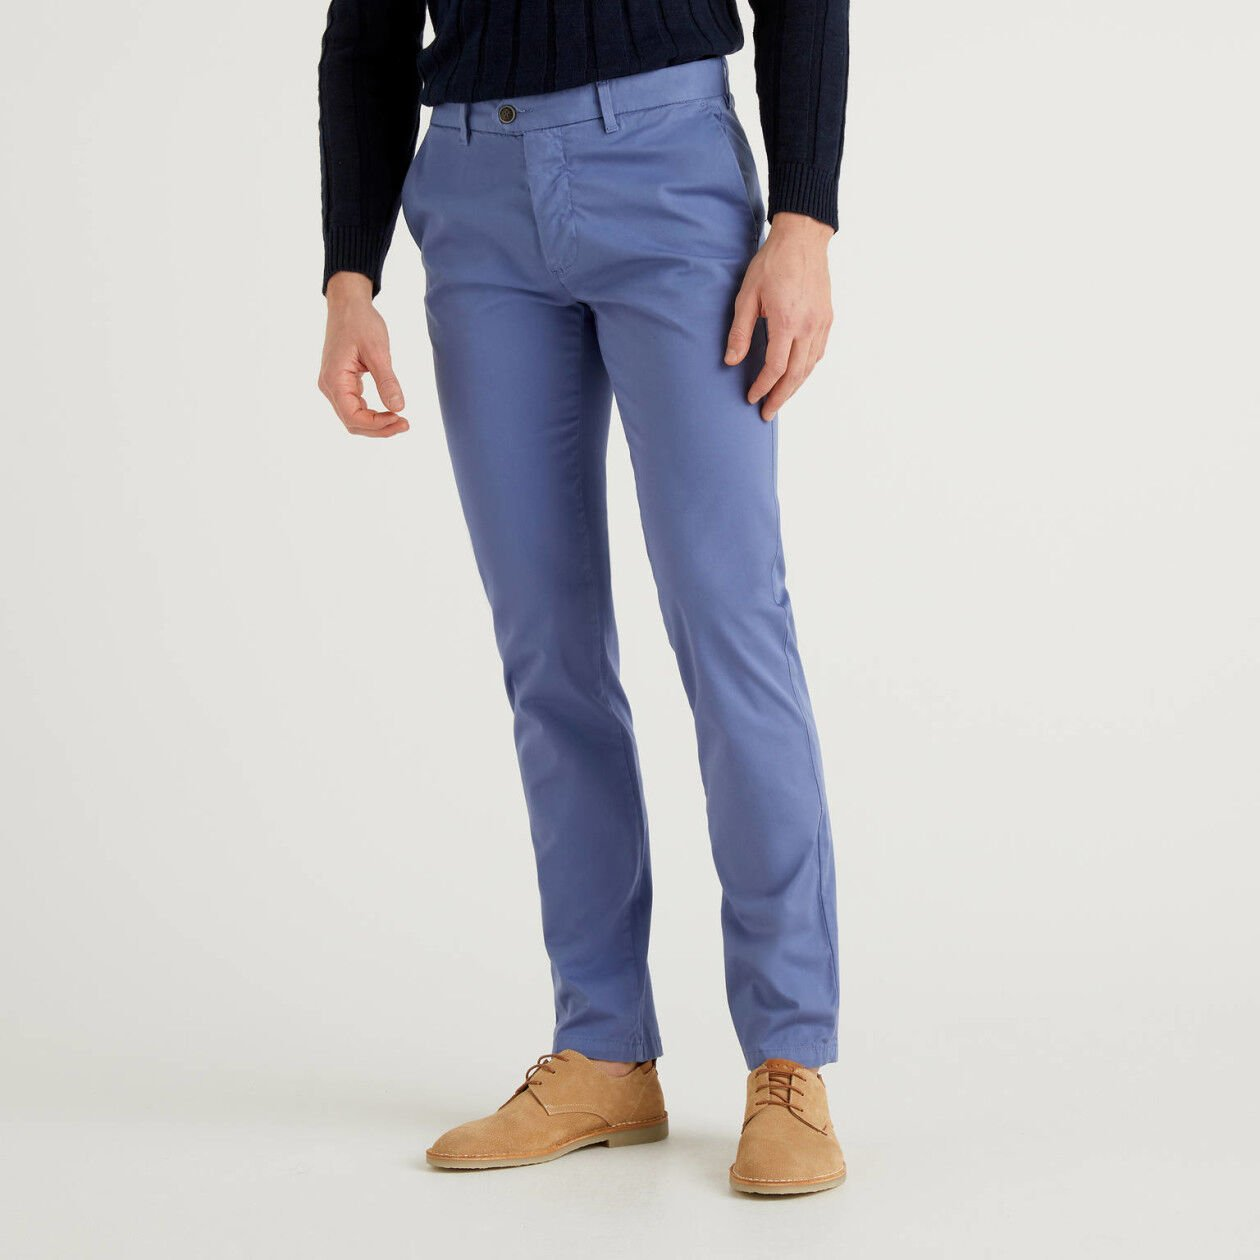 Air force blue slim fit stretch chinos